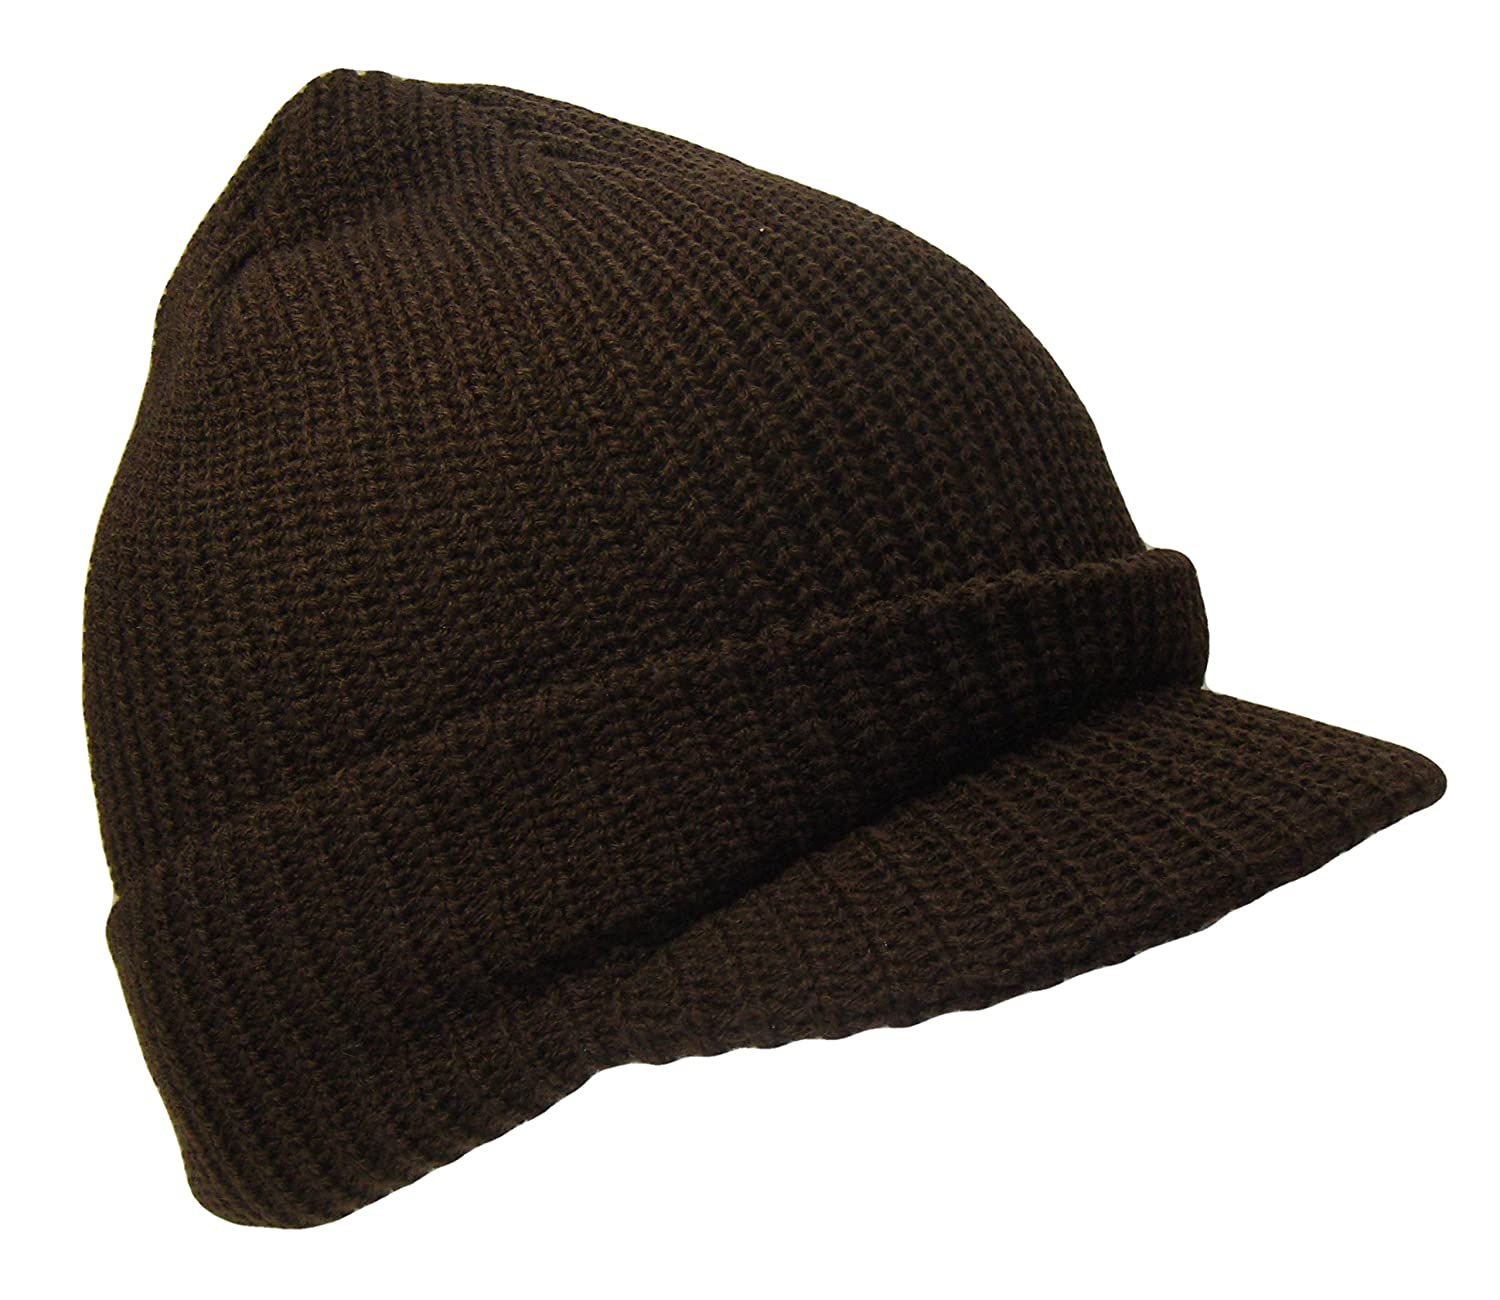 6f2ad625157 THS Knit Jeep Watch Cap Visor Beanie Ski Cap (One Size